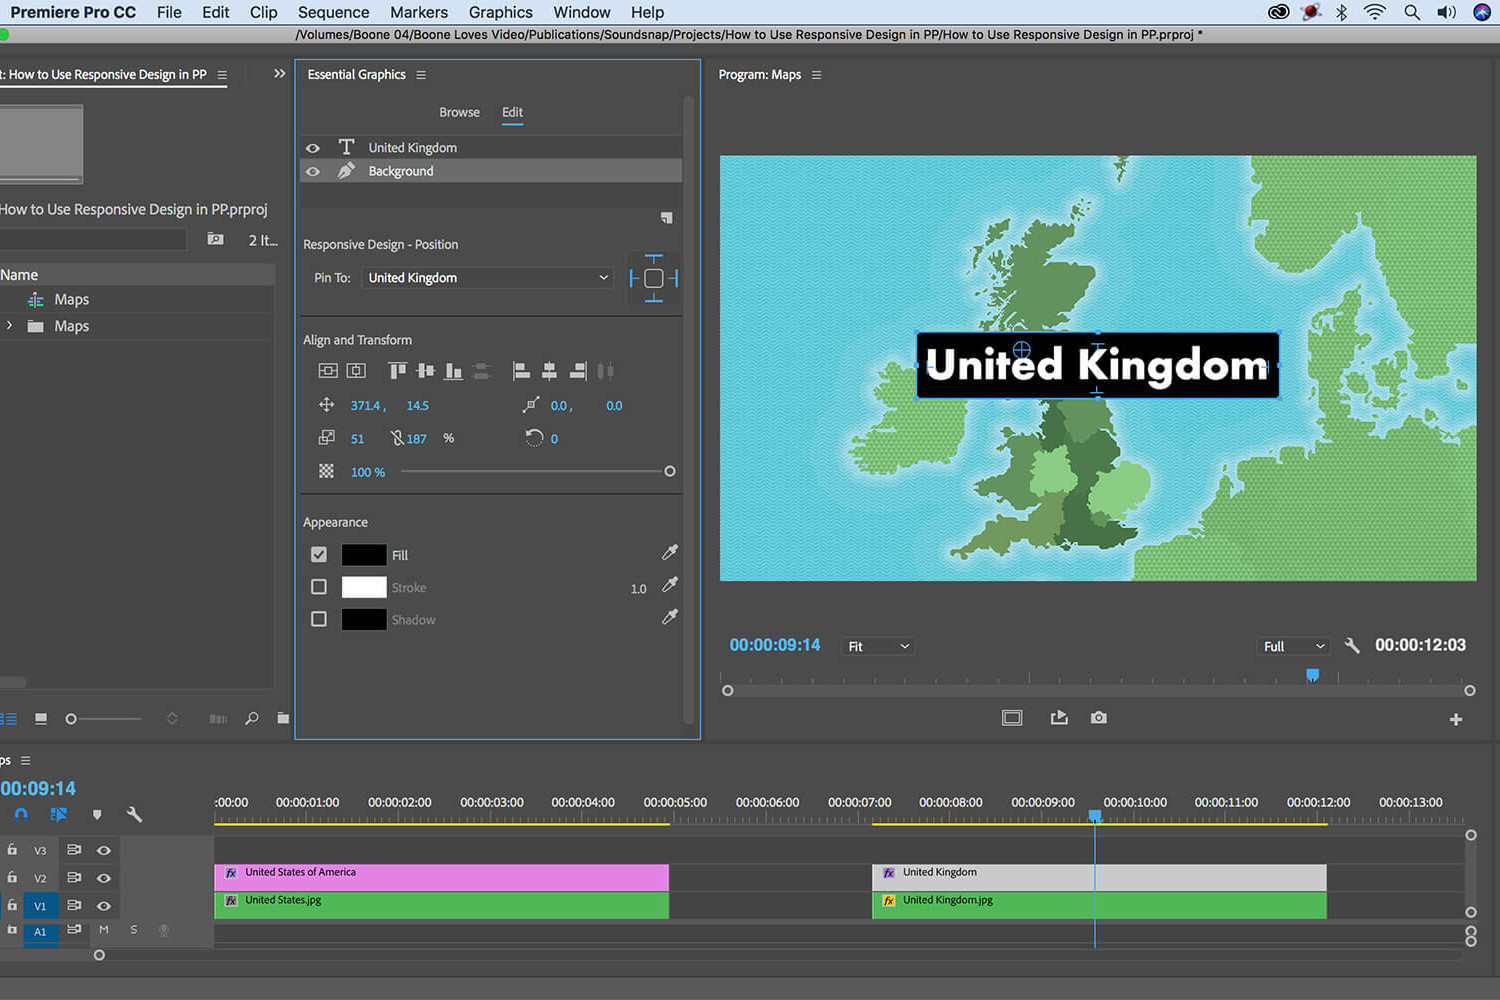 screenshot showing the setup of responsive design in Premiere Pro